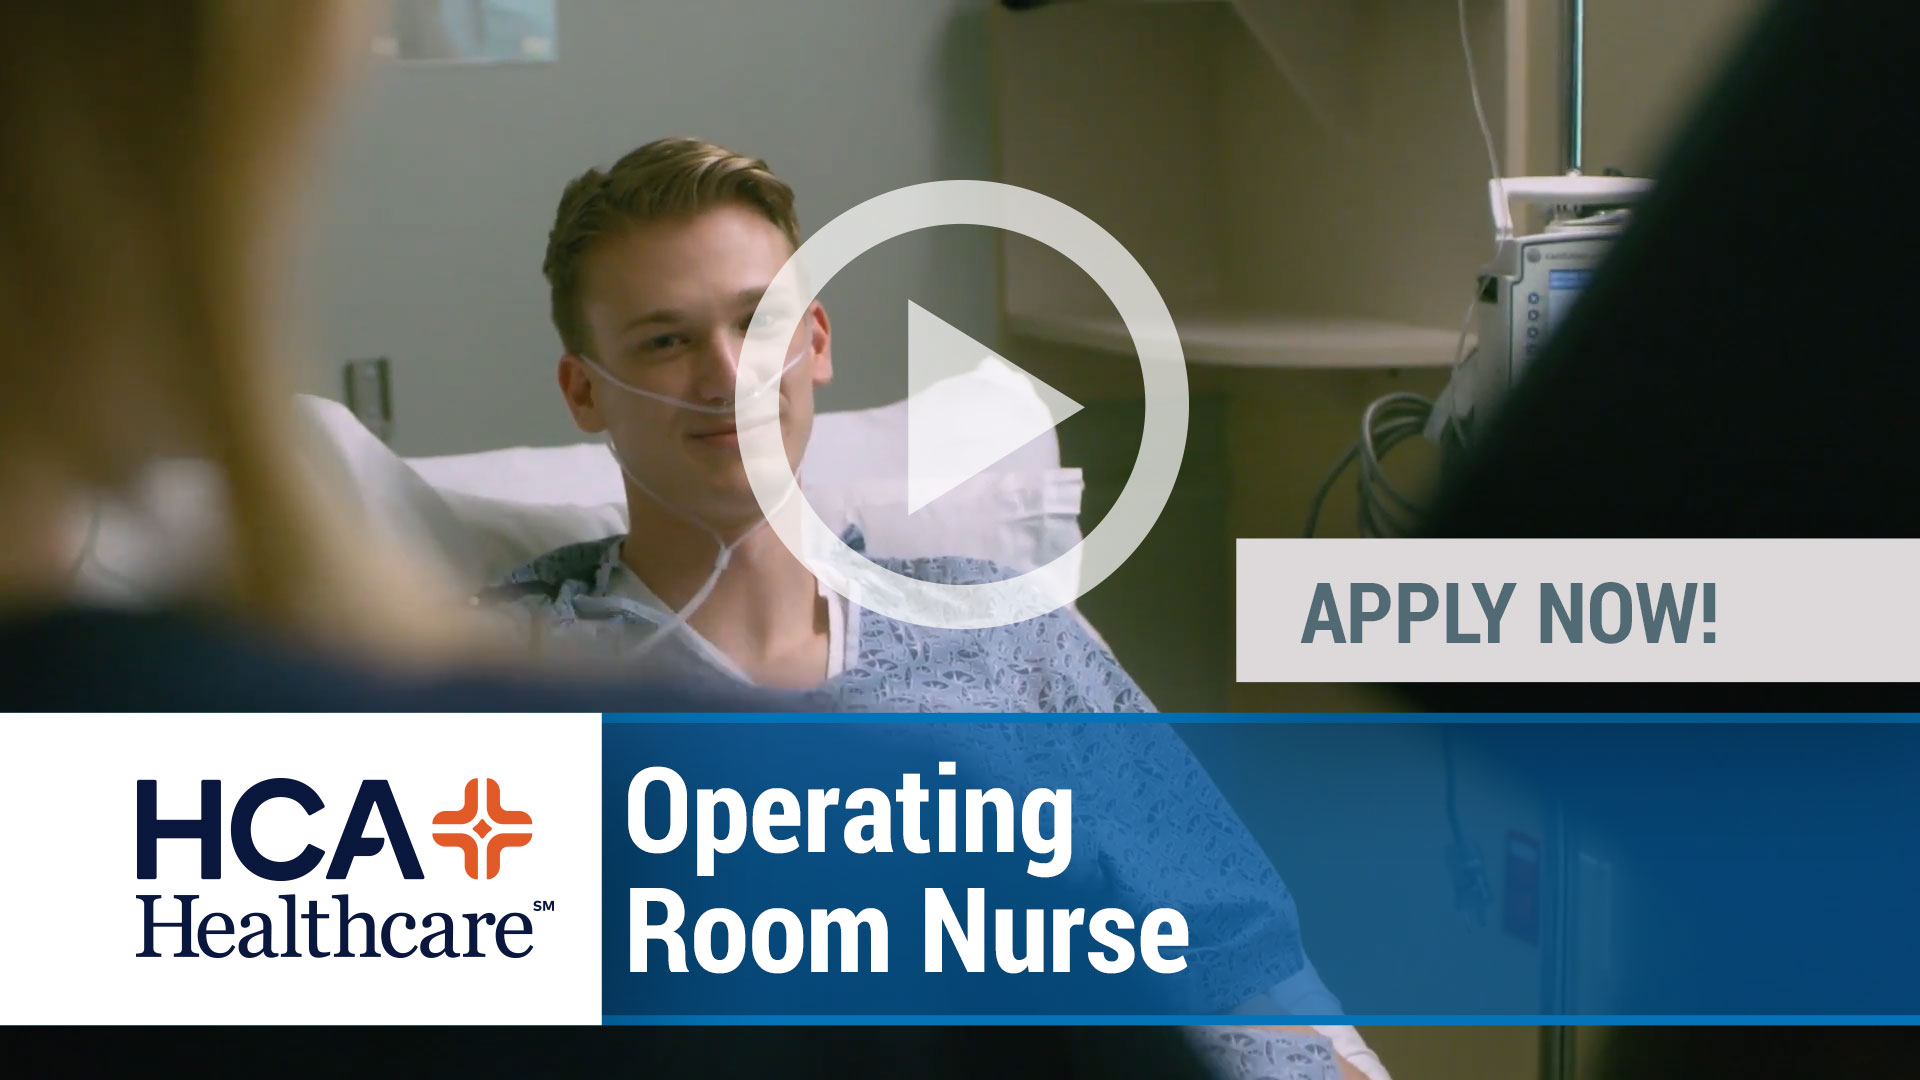 Watch our careers video for available job opening Operating Room Nurse in Fort Pierce, Florida